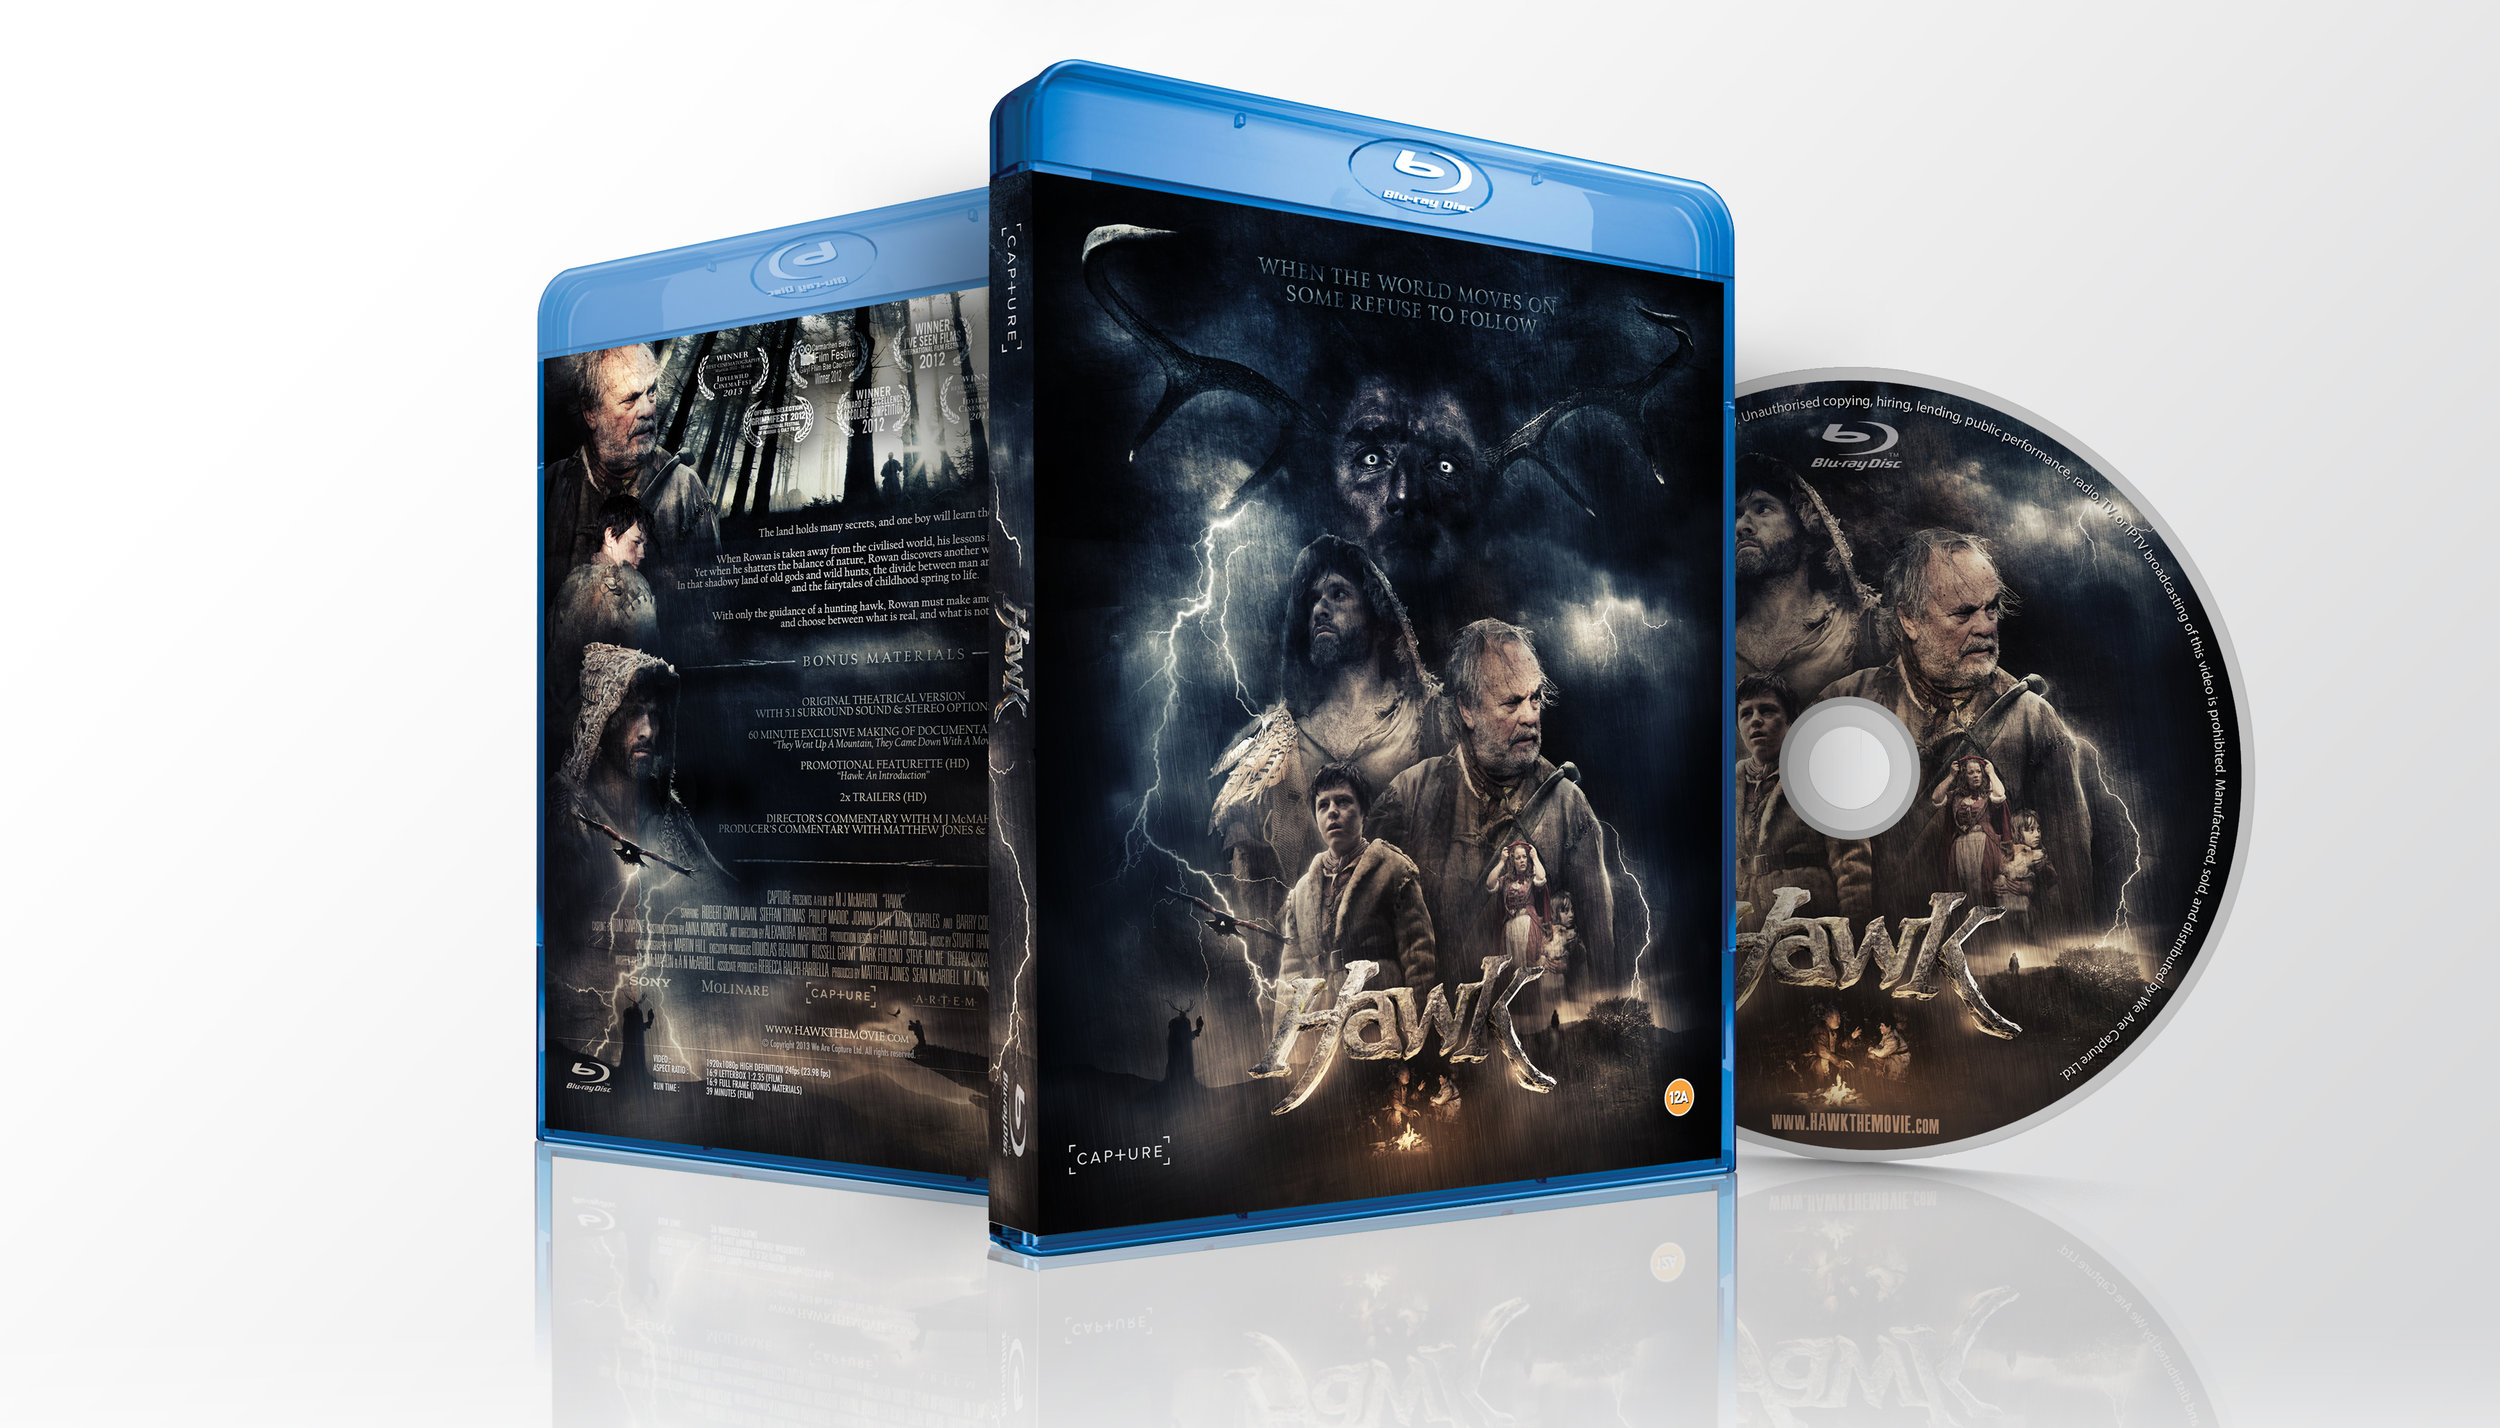 Hawk Blu-ray available through the  Capture Shop  and  Amazon